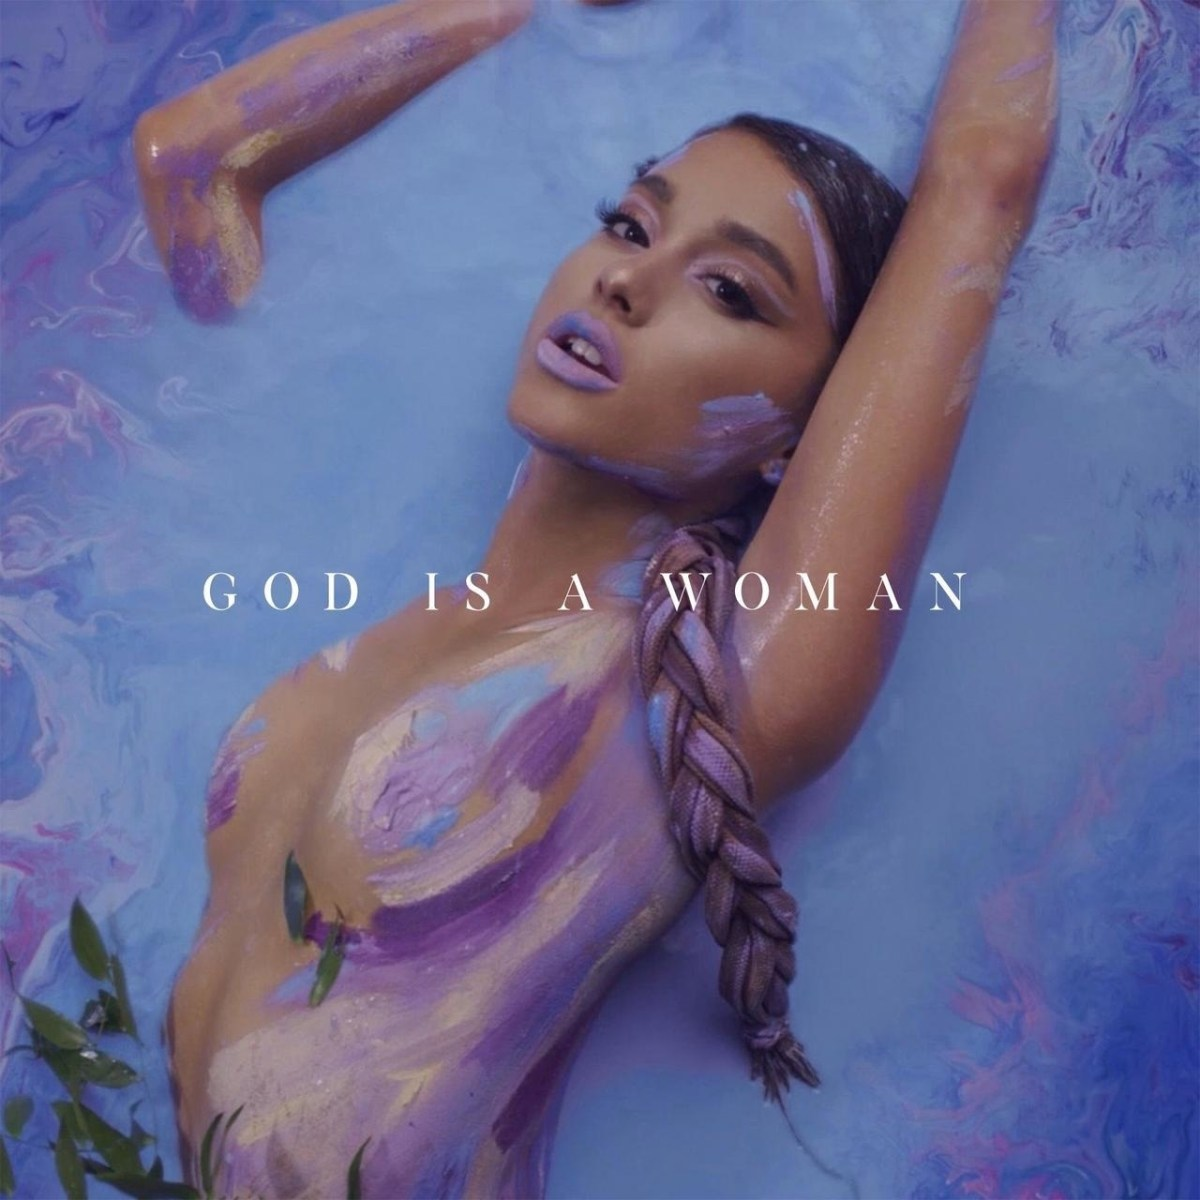 Ariana Grande | God is a woman | Single Review